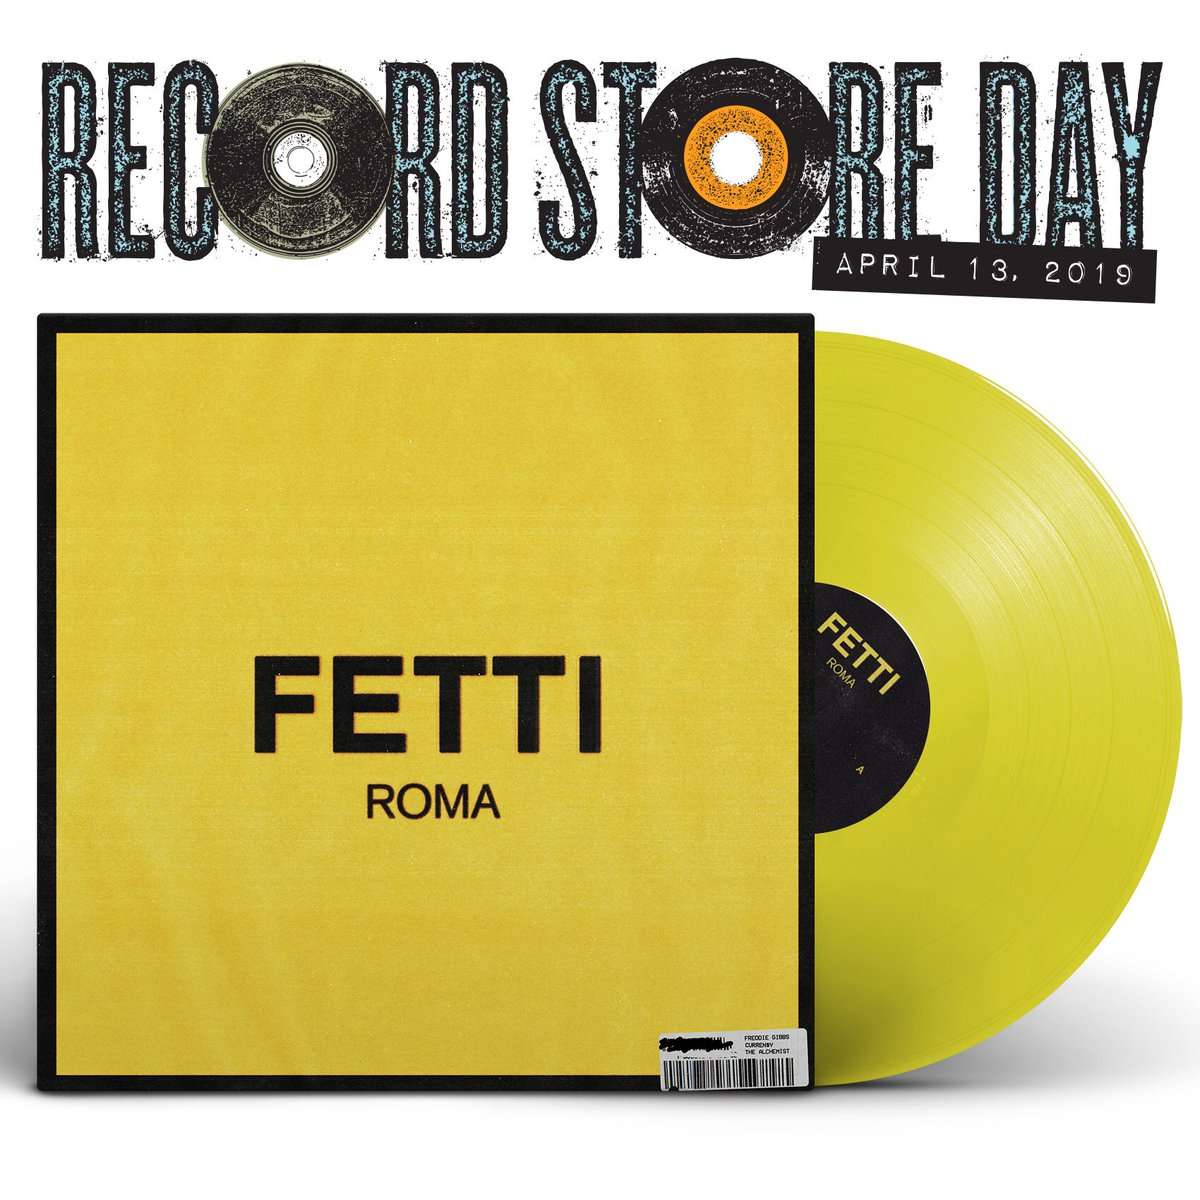 CURREN$Y, FREDDIE GIBBS AND THE ALCHEMIST - FETTI (YELLOW VINYL)02